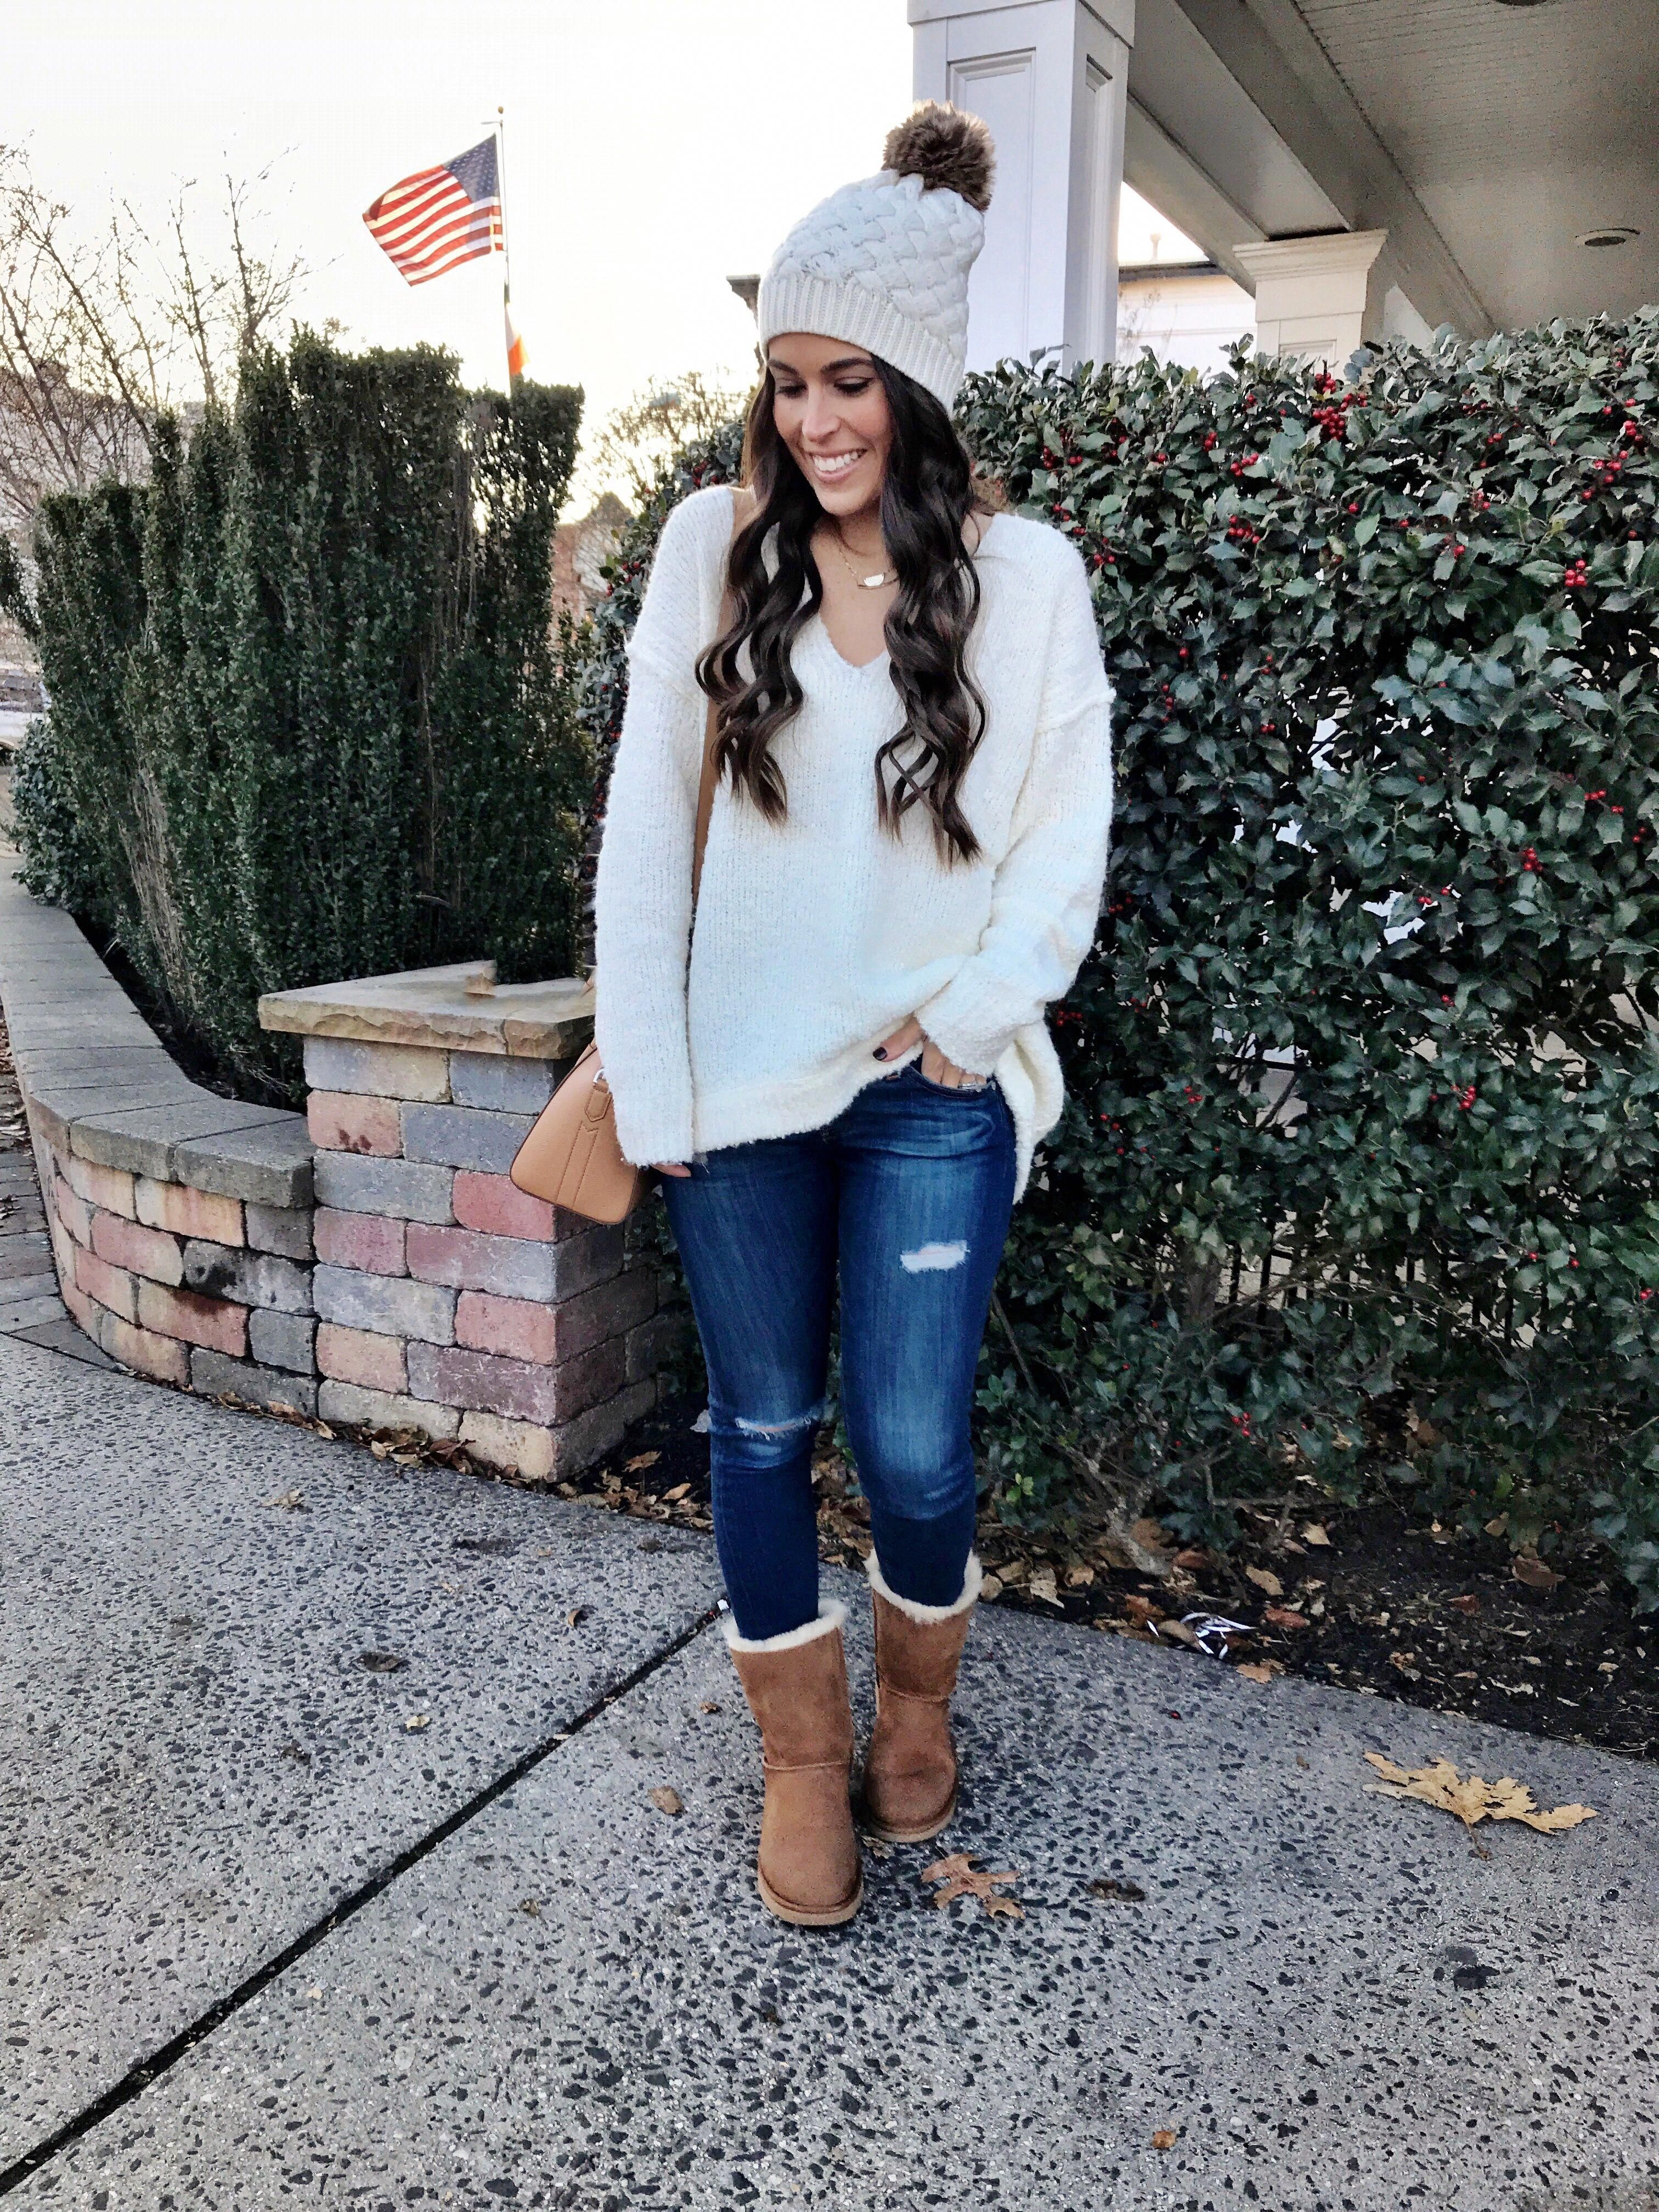 How To Wear Uggs: Complete Guide For Women 2020